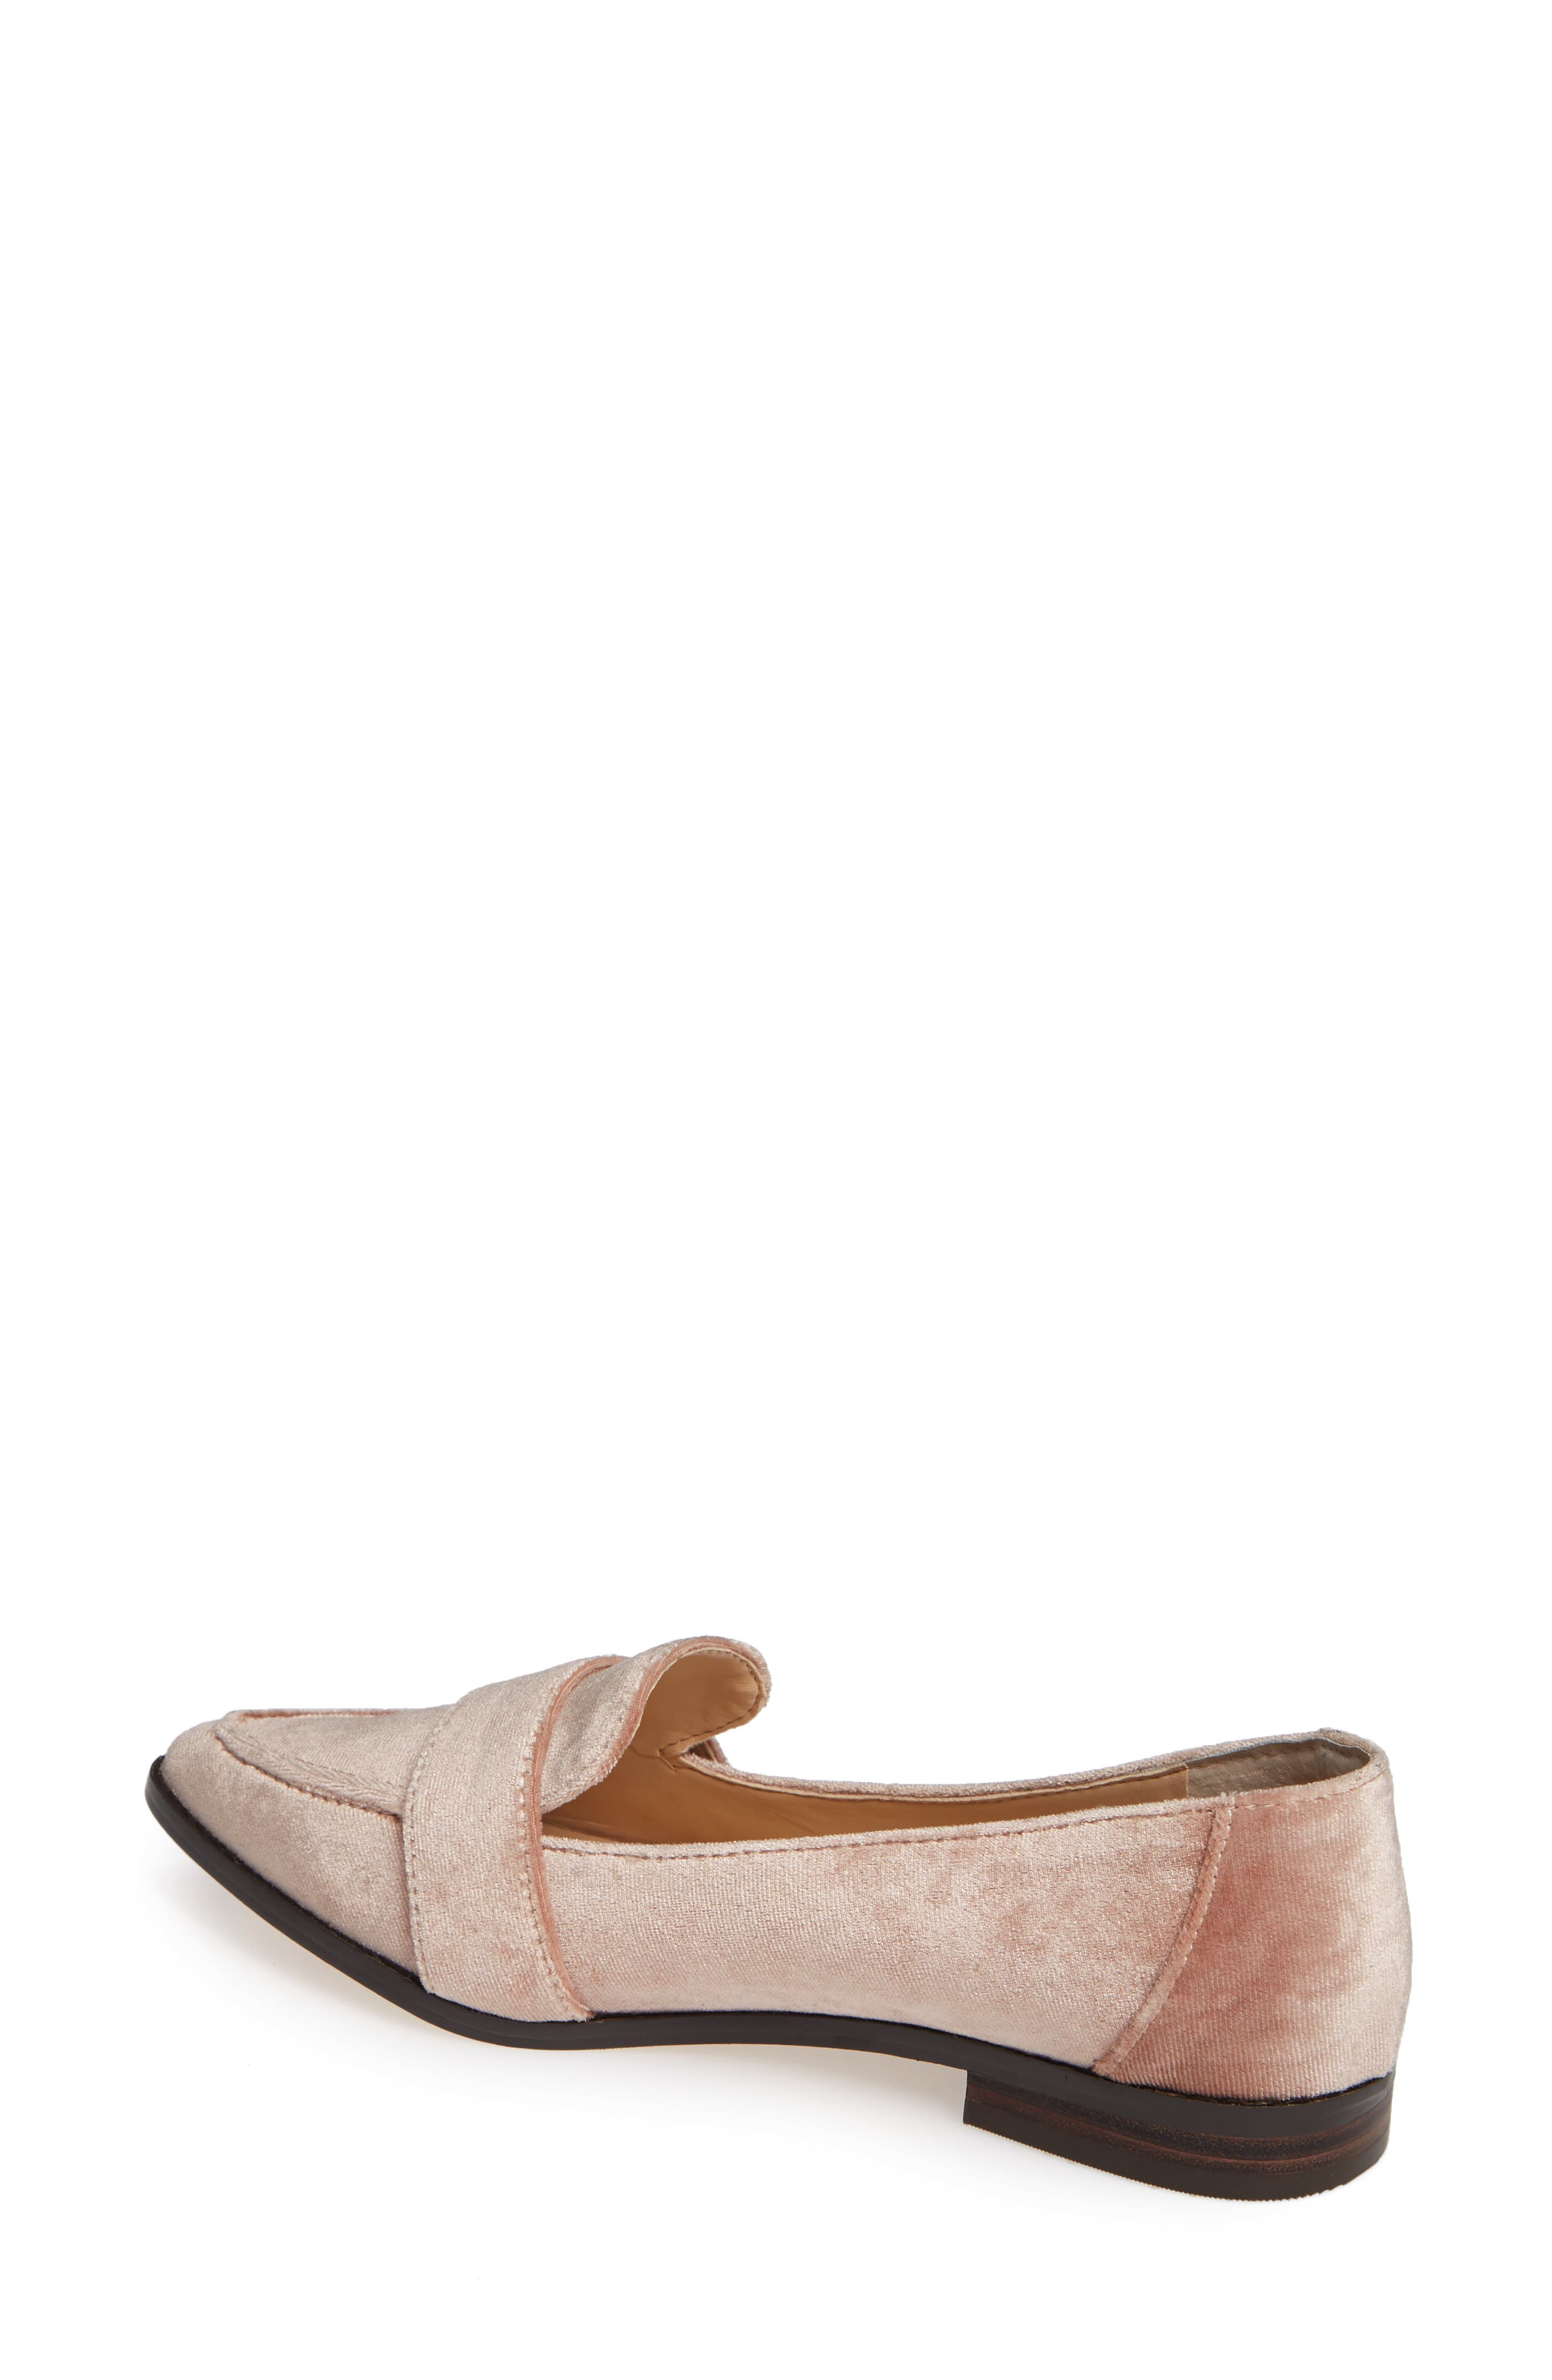 SOLE SOCIETY, Edie Pointy Toe Loafer, Alternate thumbnail 2, color, 682